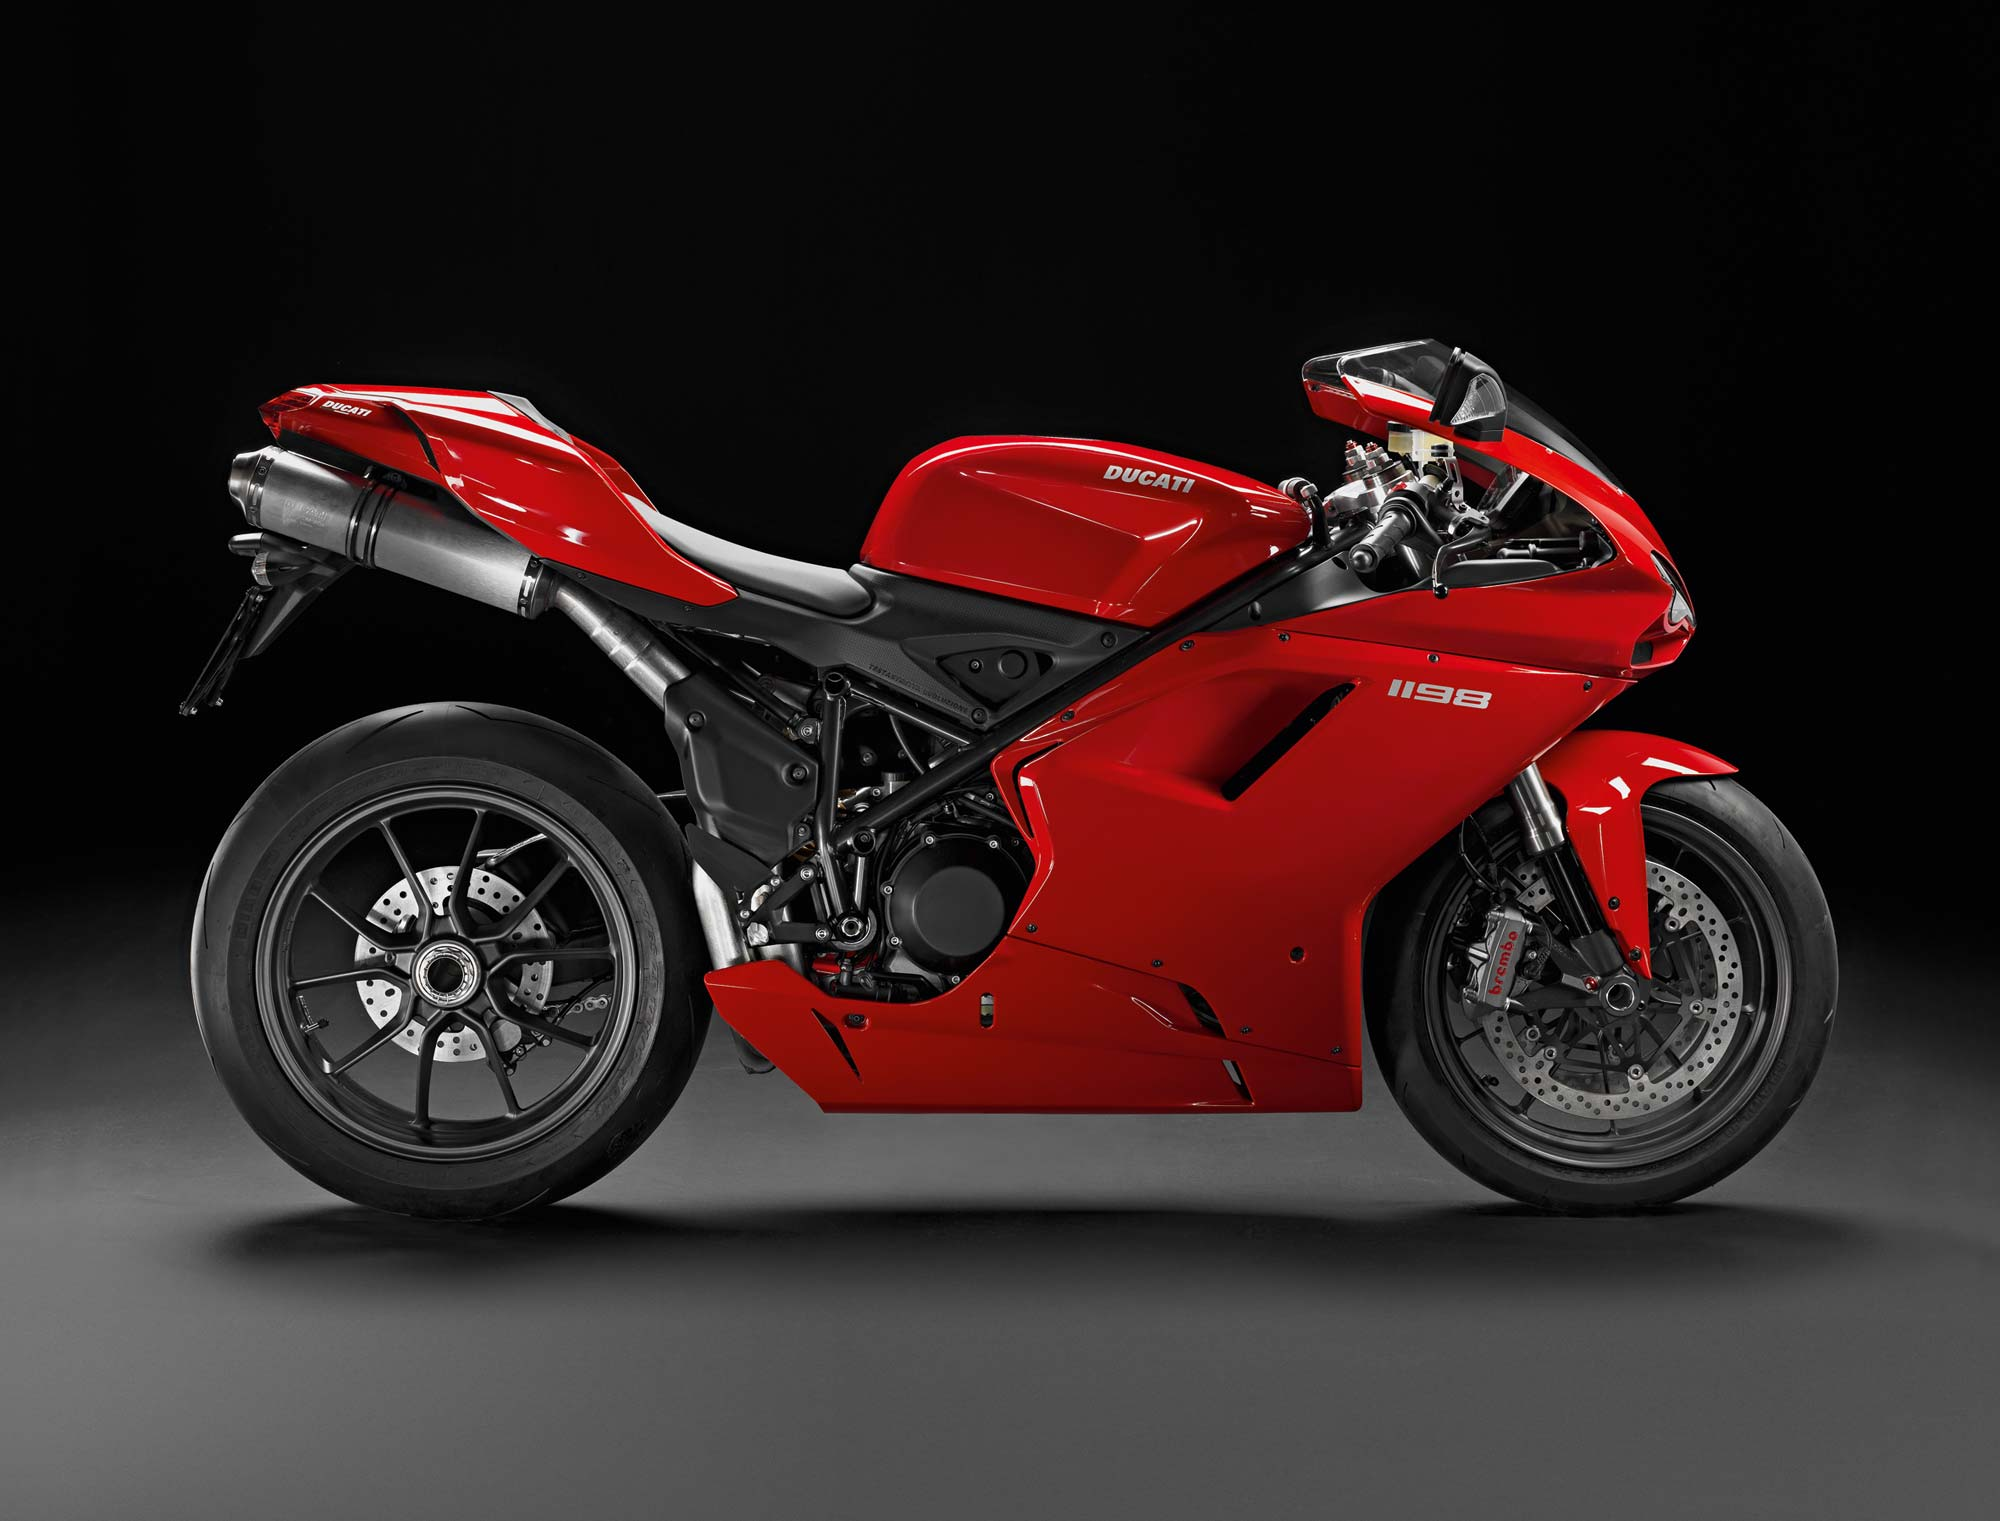 2011 Ducati Superbike 1198 Gets Free Traction Control